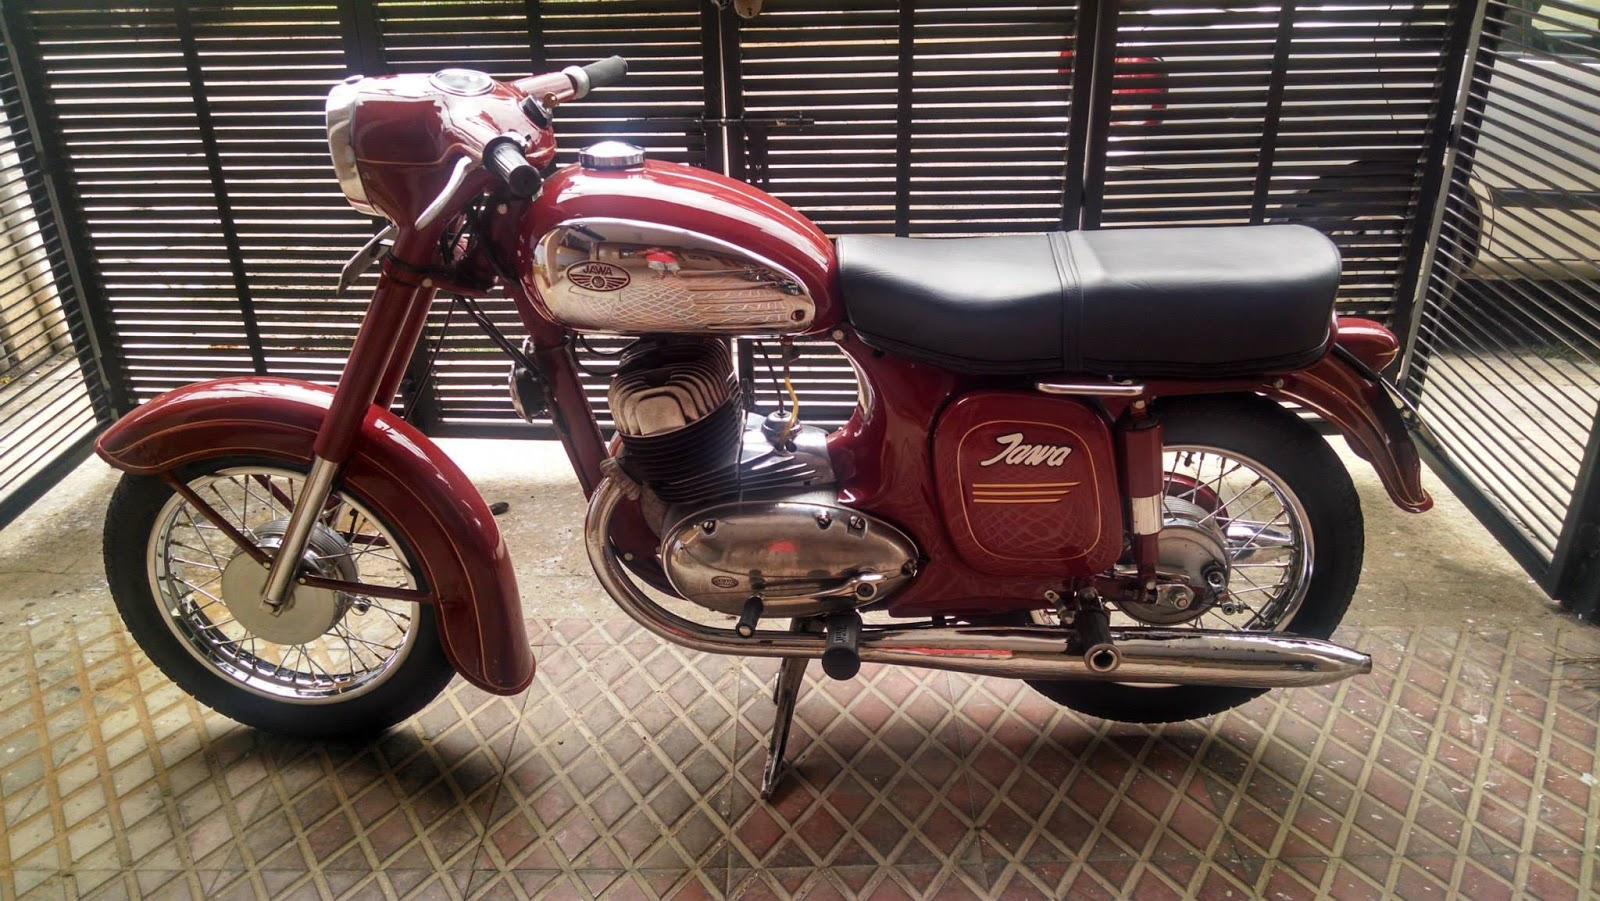 Bangalore Jawa Yezdi Motorcycle Club Ideal Jawa Forever Bike